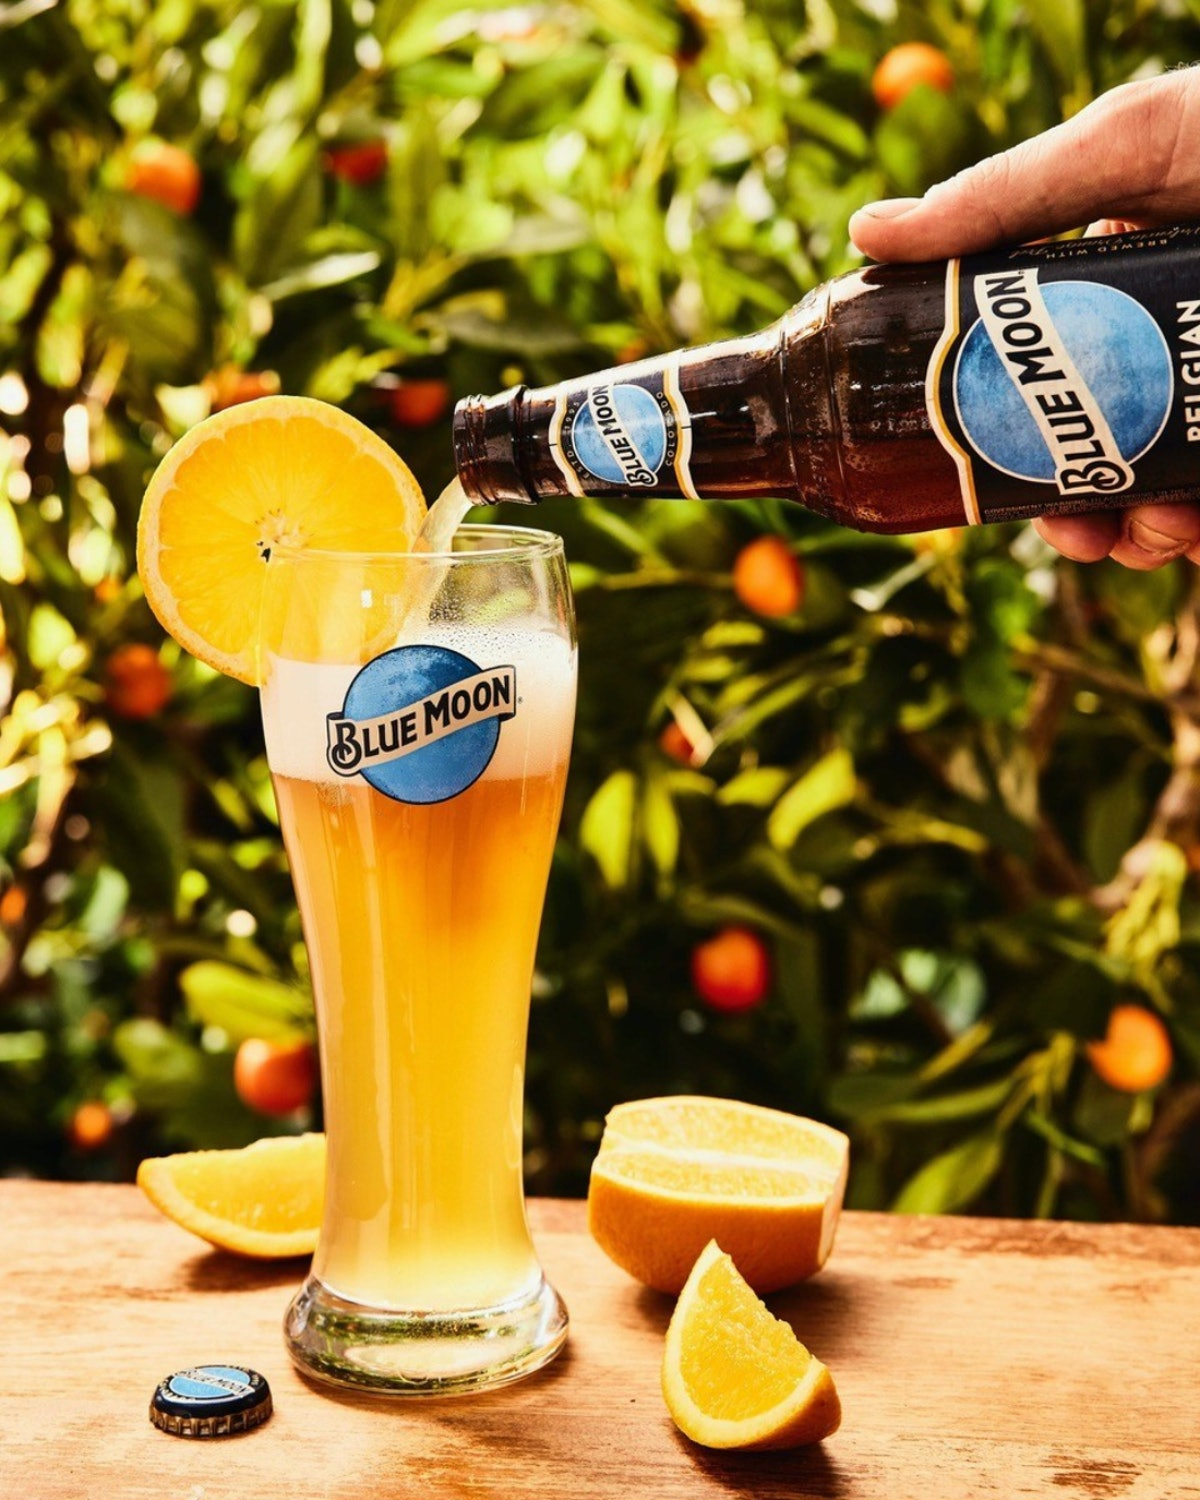 Here's how to enter Blue Moon's Tree Farm sweepstakes for a chance to win a year of free brews.